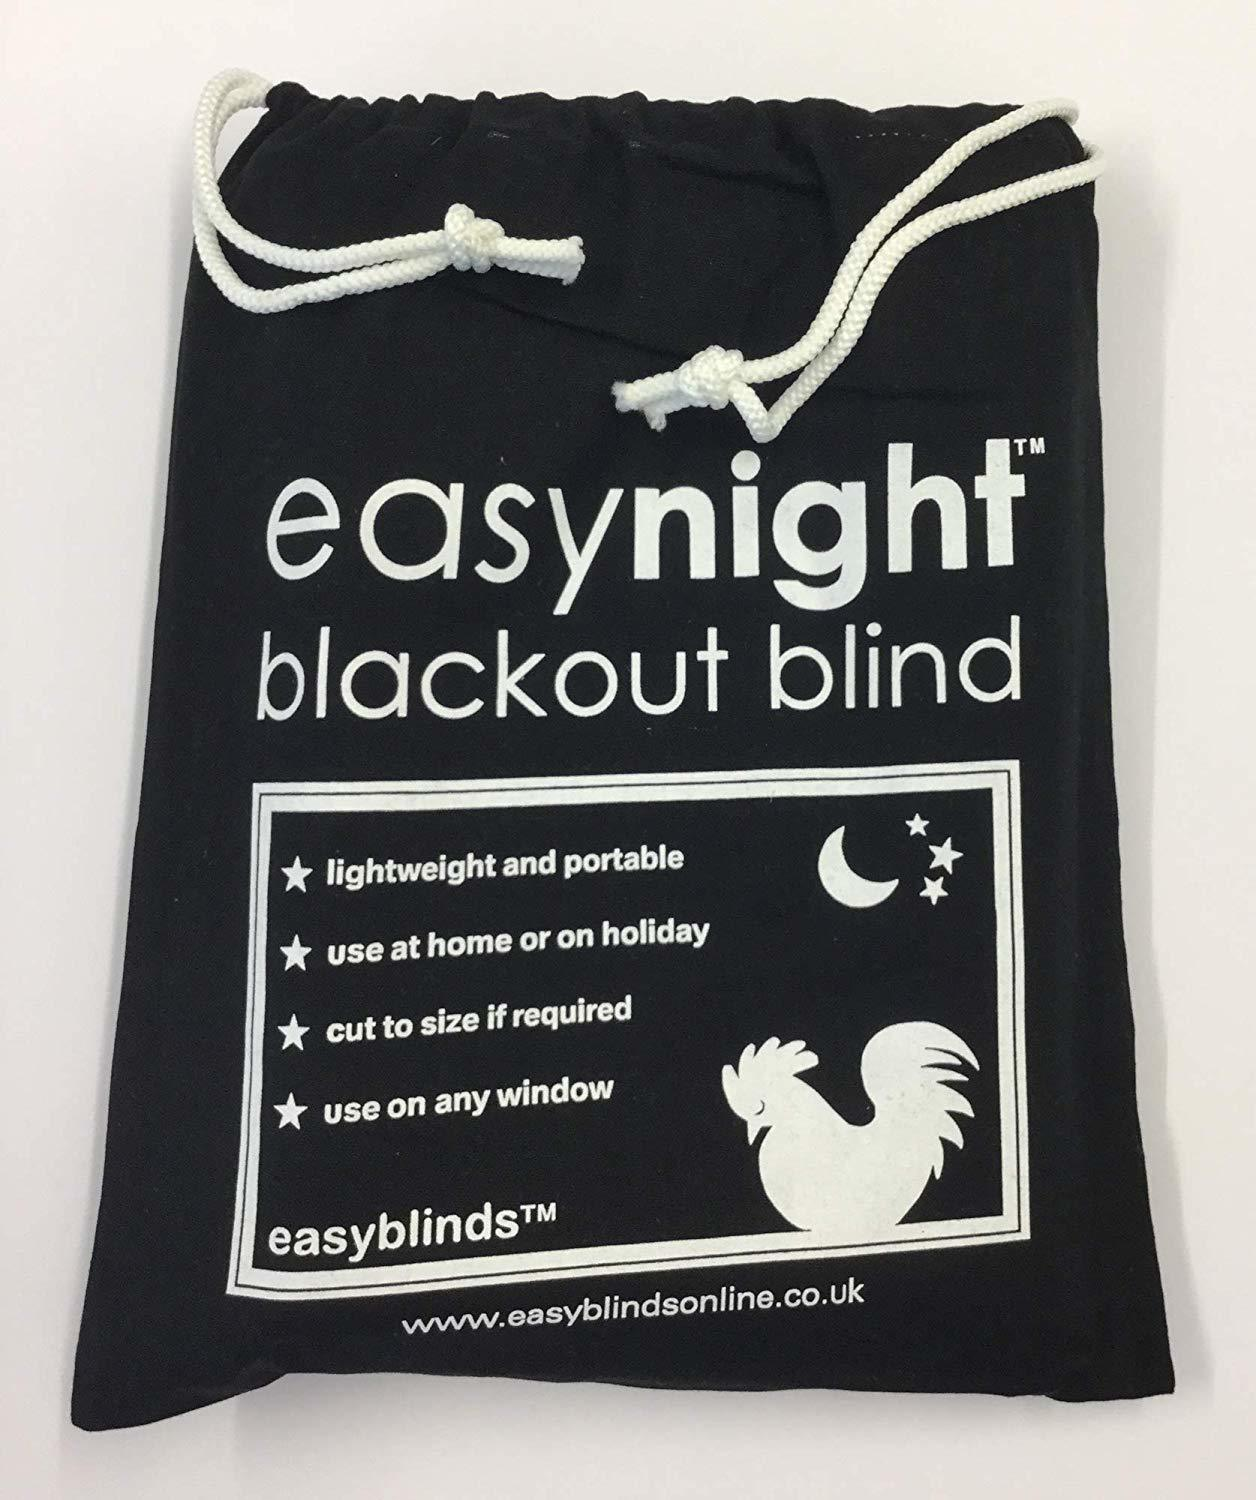 Easynight: Blackout Blind - XL (2.3m x 1.4m) image